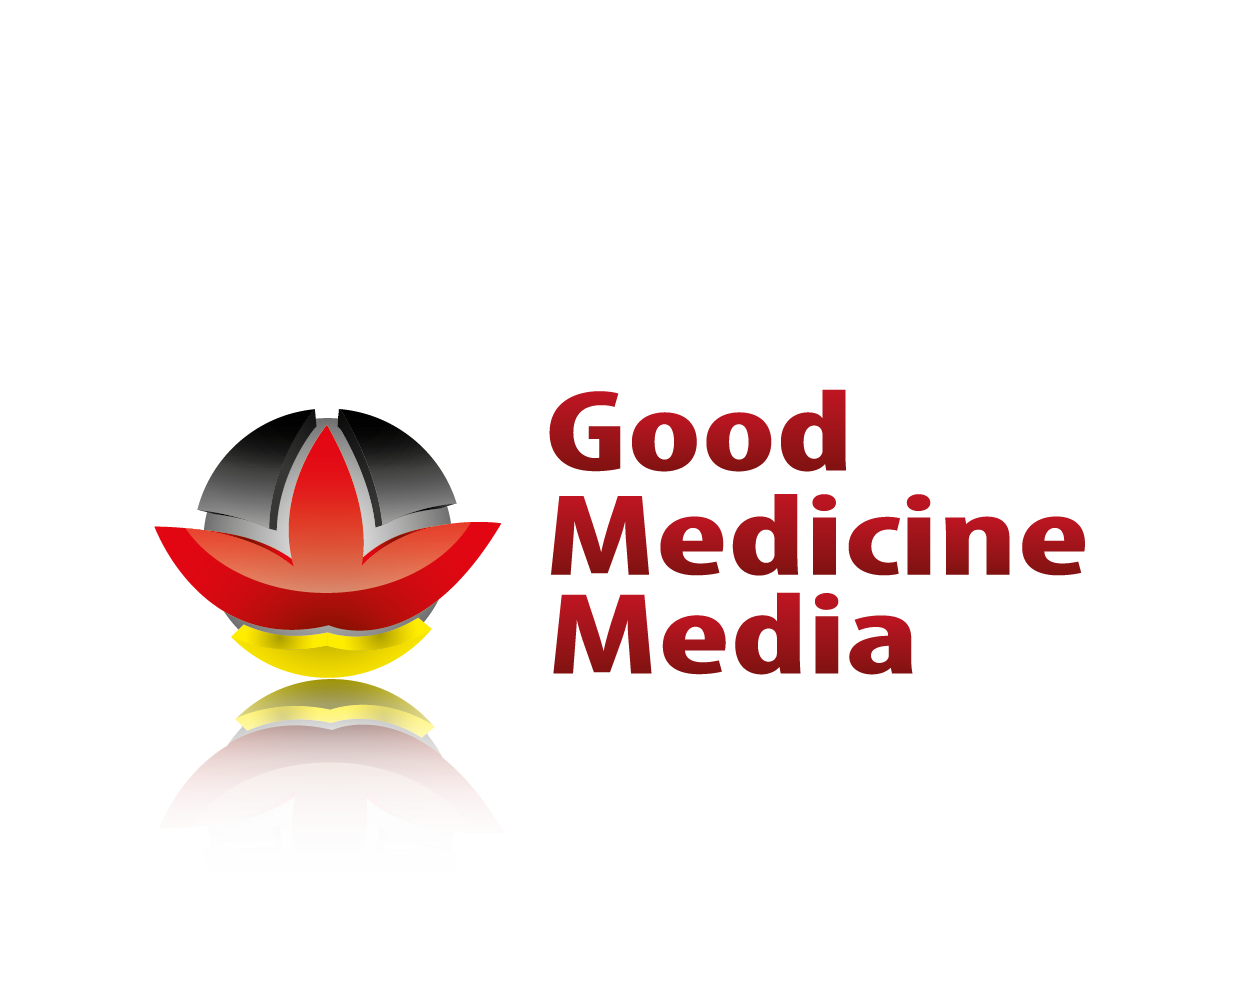 Logo Design by 354studio - Entry No. 61 in the Logo Design Contest Good Medicine Media Logo Design.